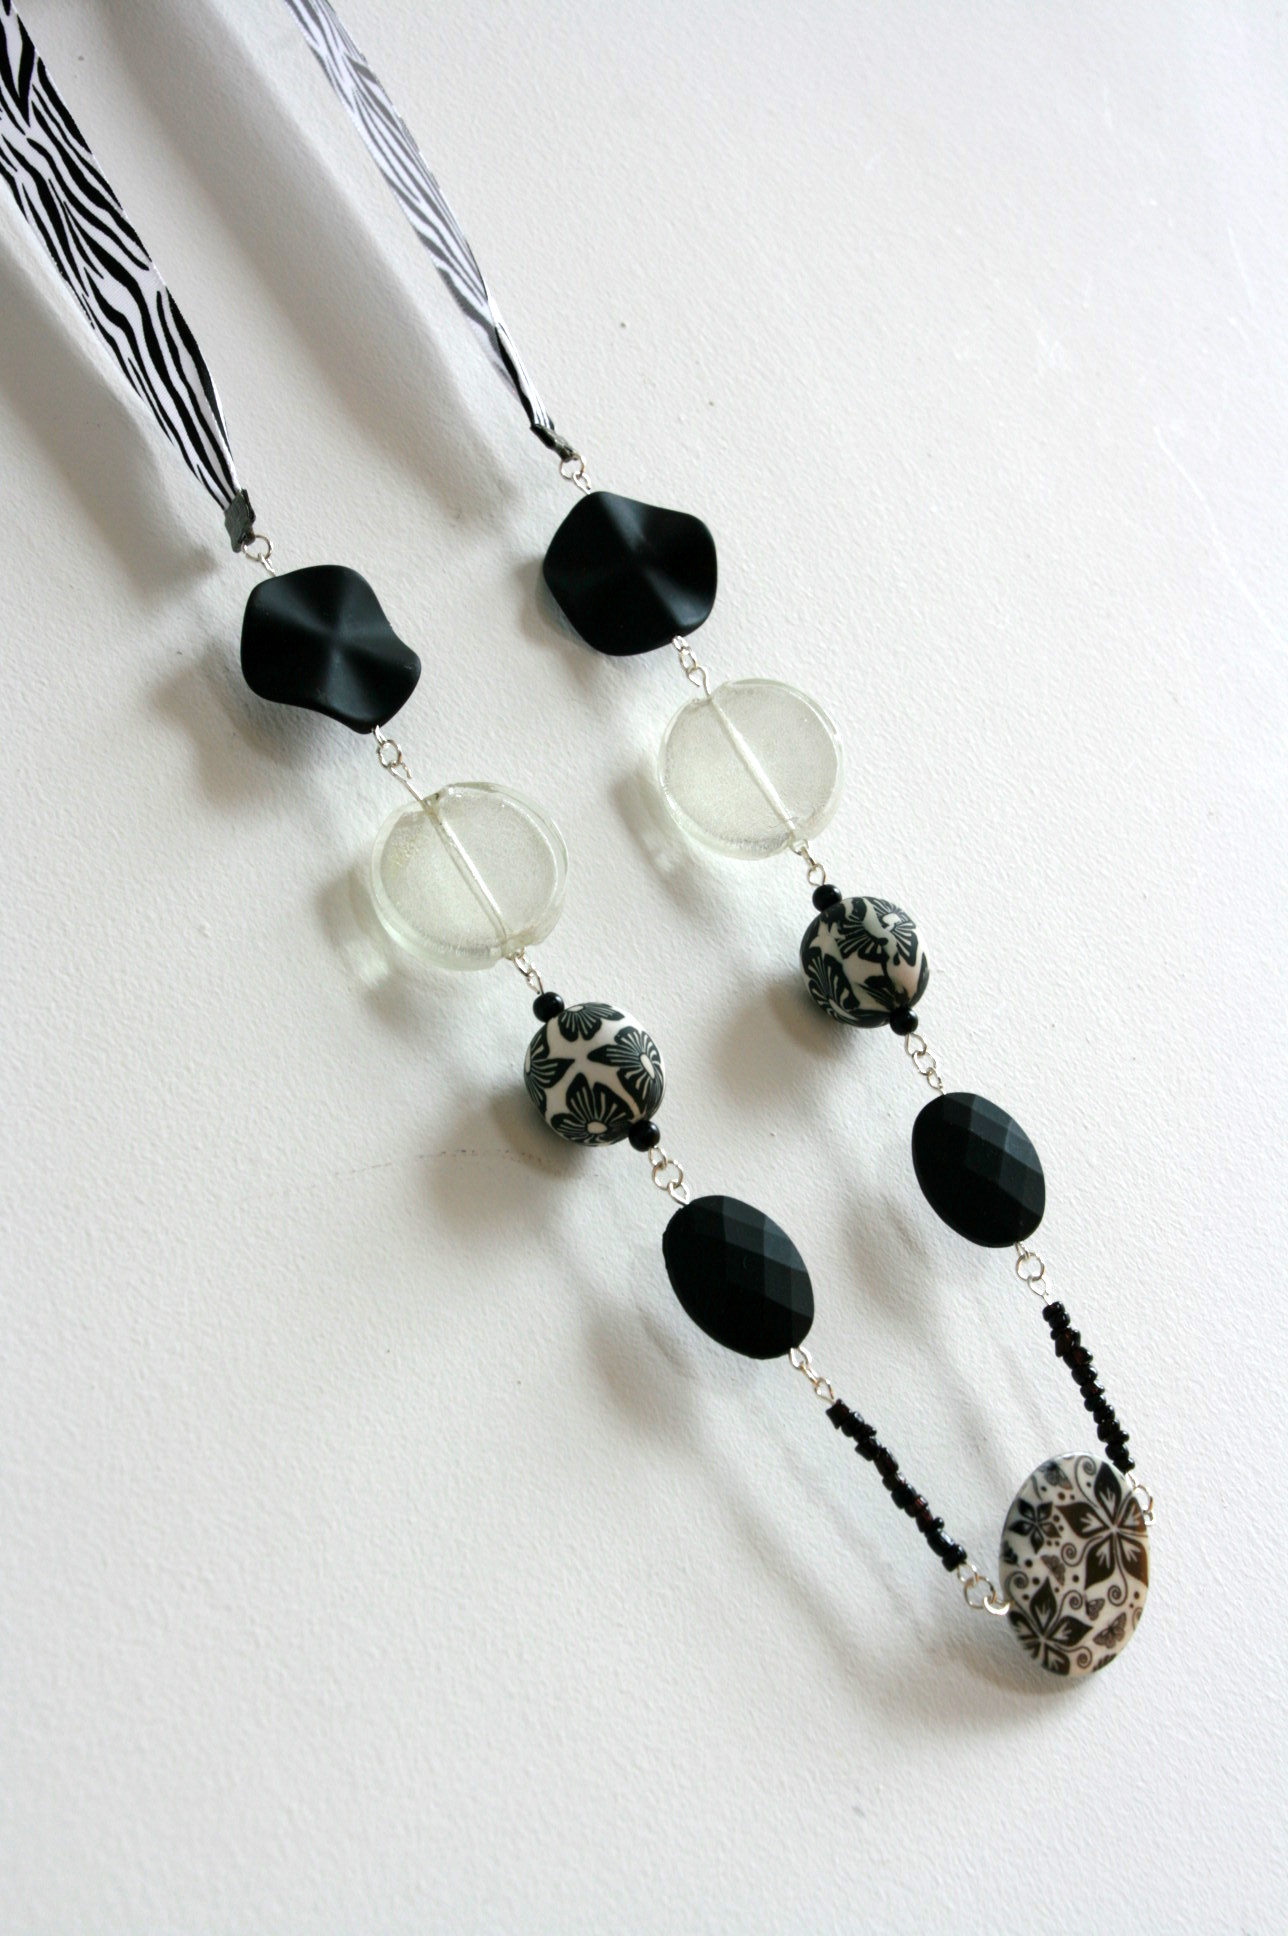 Monochrome necklace.